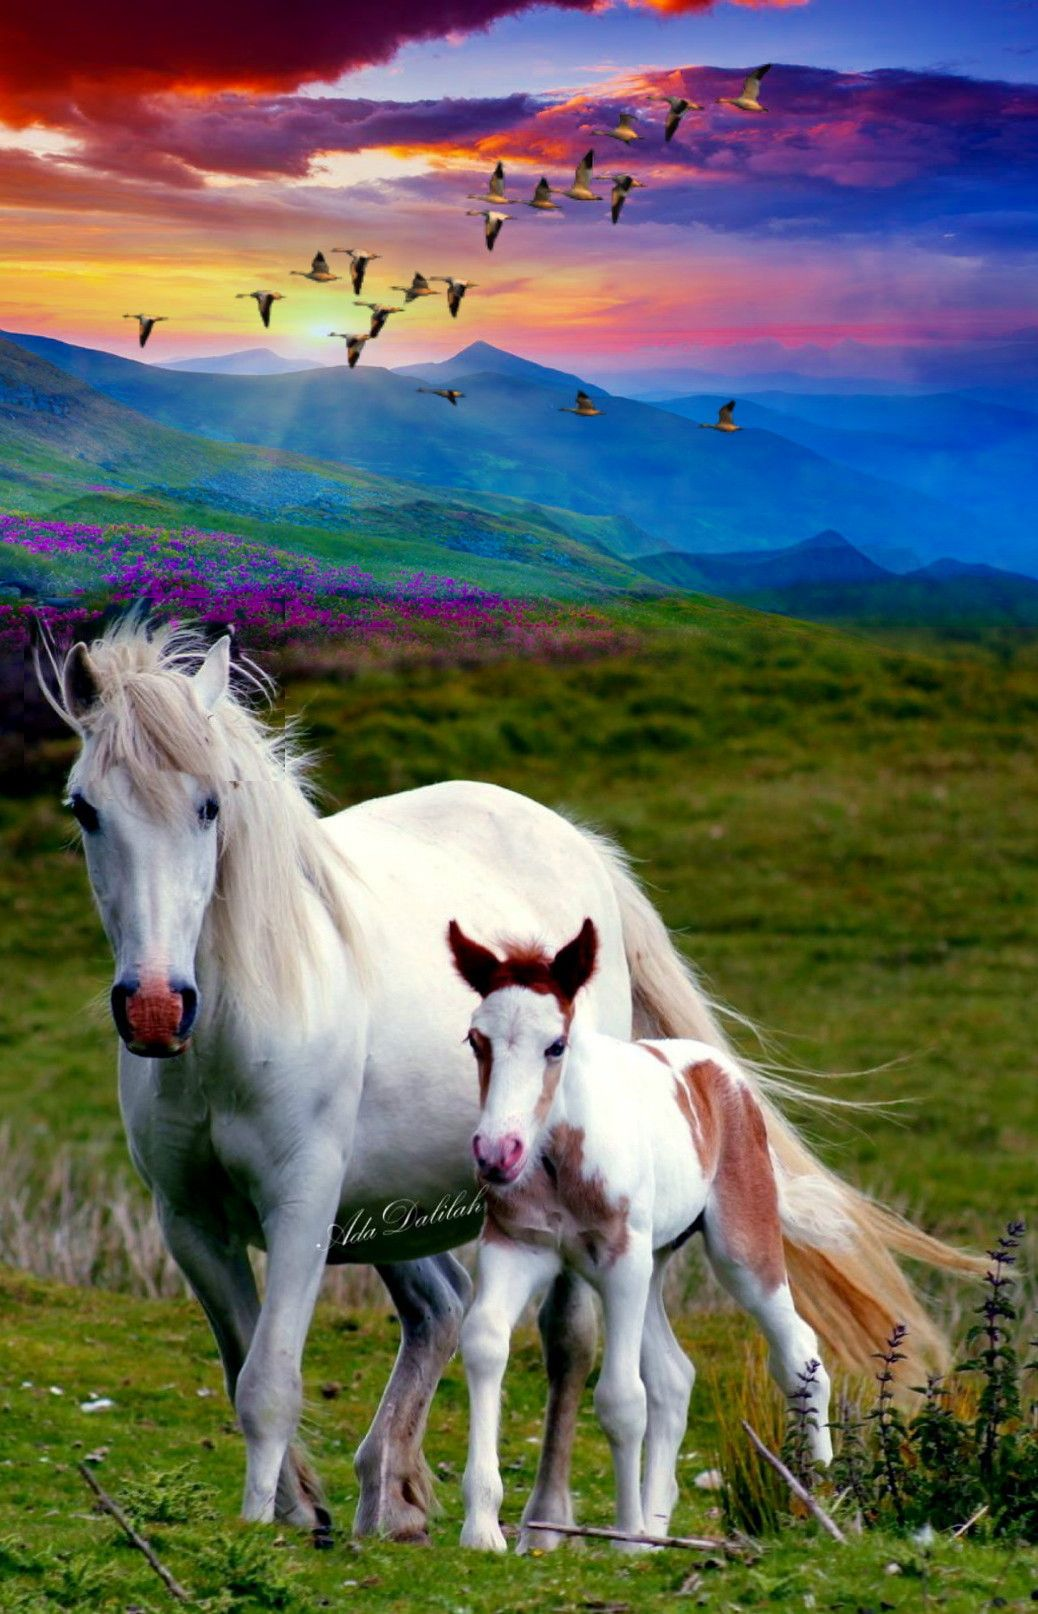 Pin By Ada Dalilah On Horse Art Creative Montage Animals Beautiful Pretty Horses Animals Wild